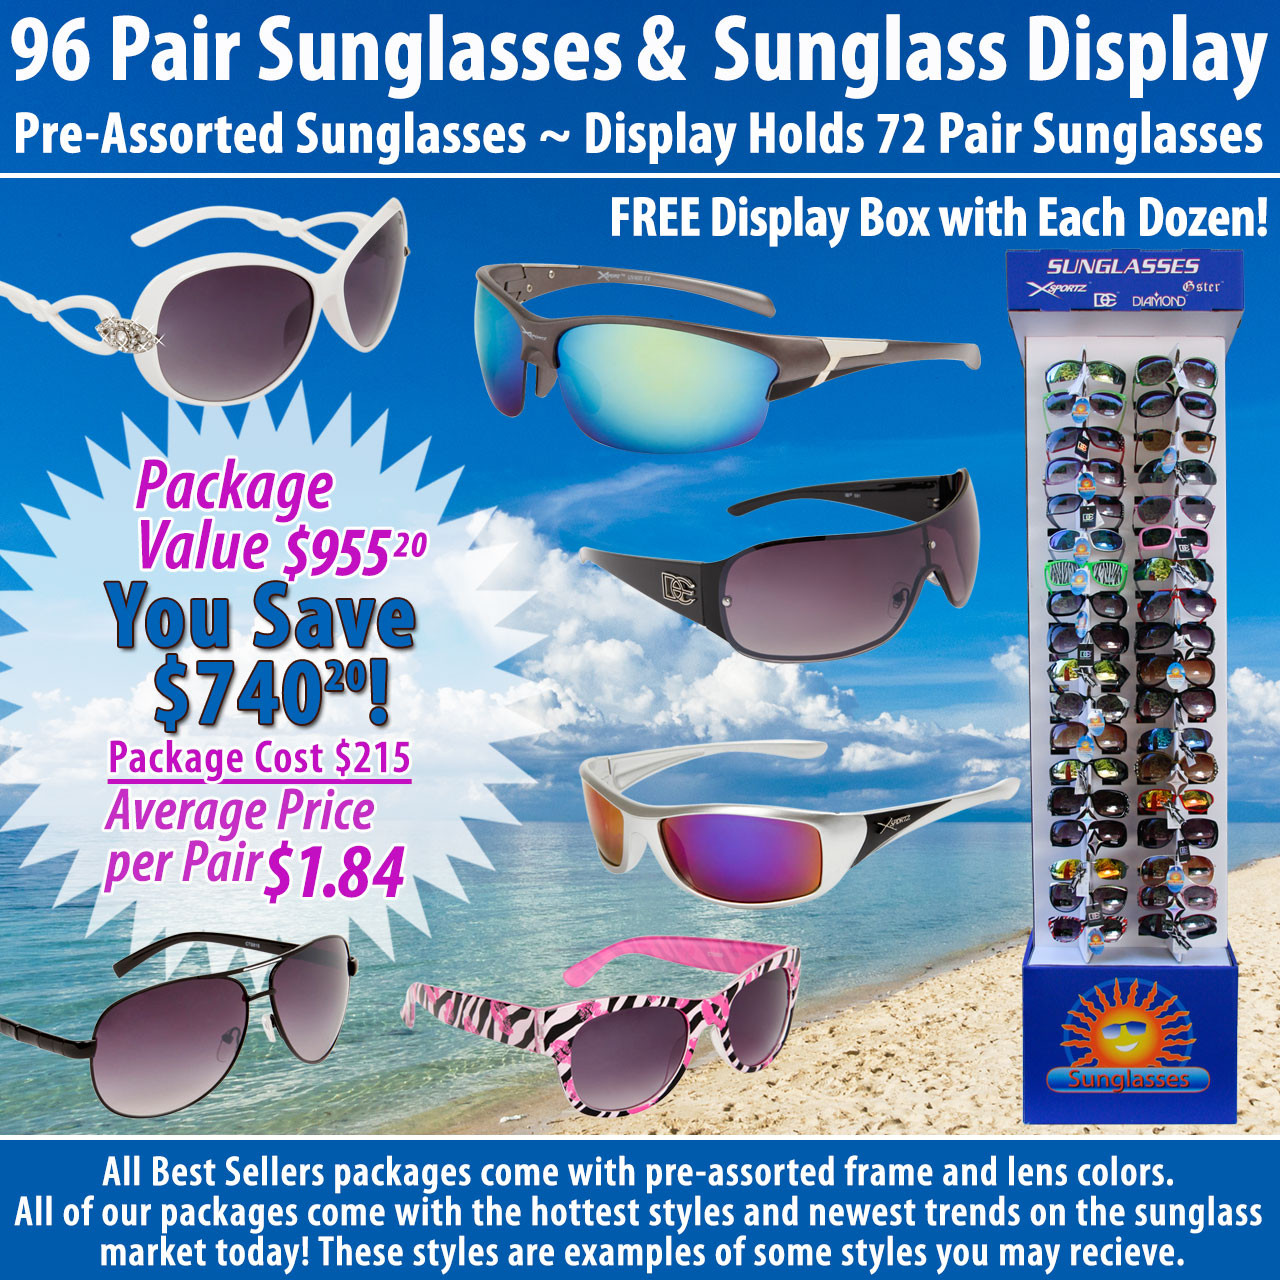 Package Deal SPA14 ~ 96 Pair Sunglasses & 7002 Display (96 pcs.) Display Holds 72 Pair